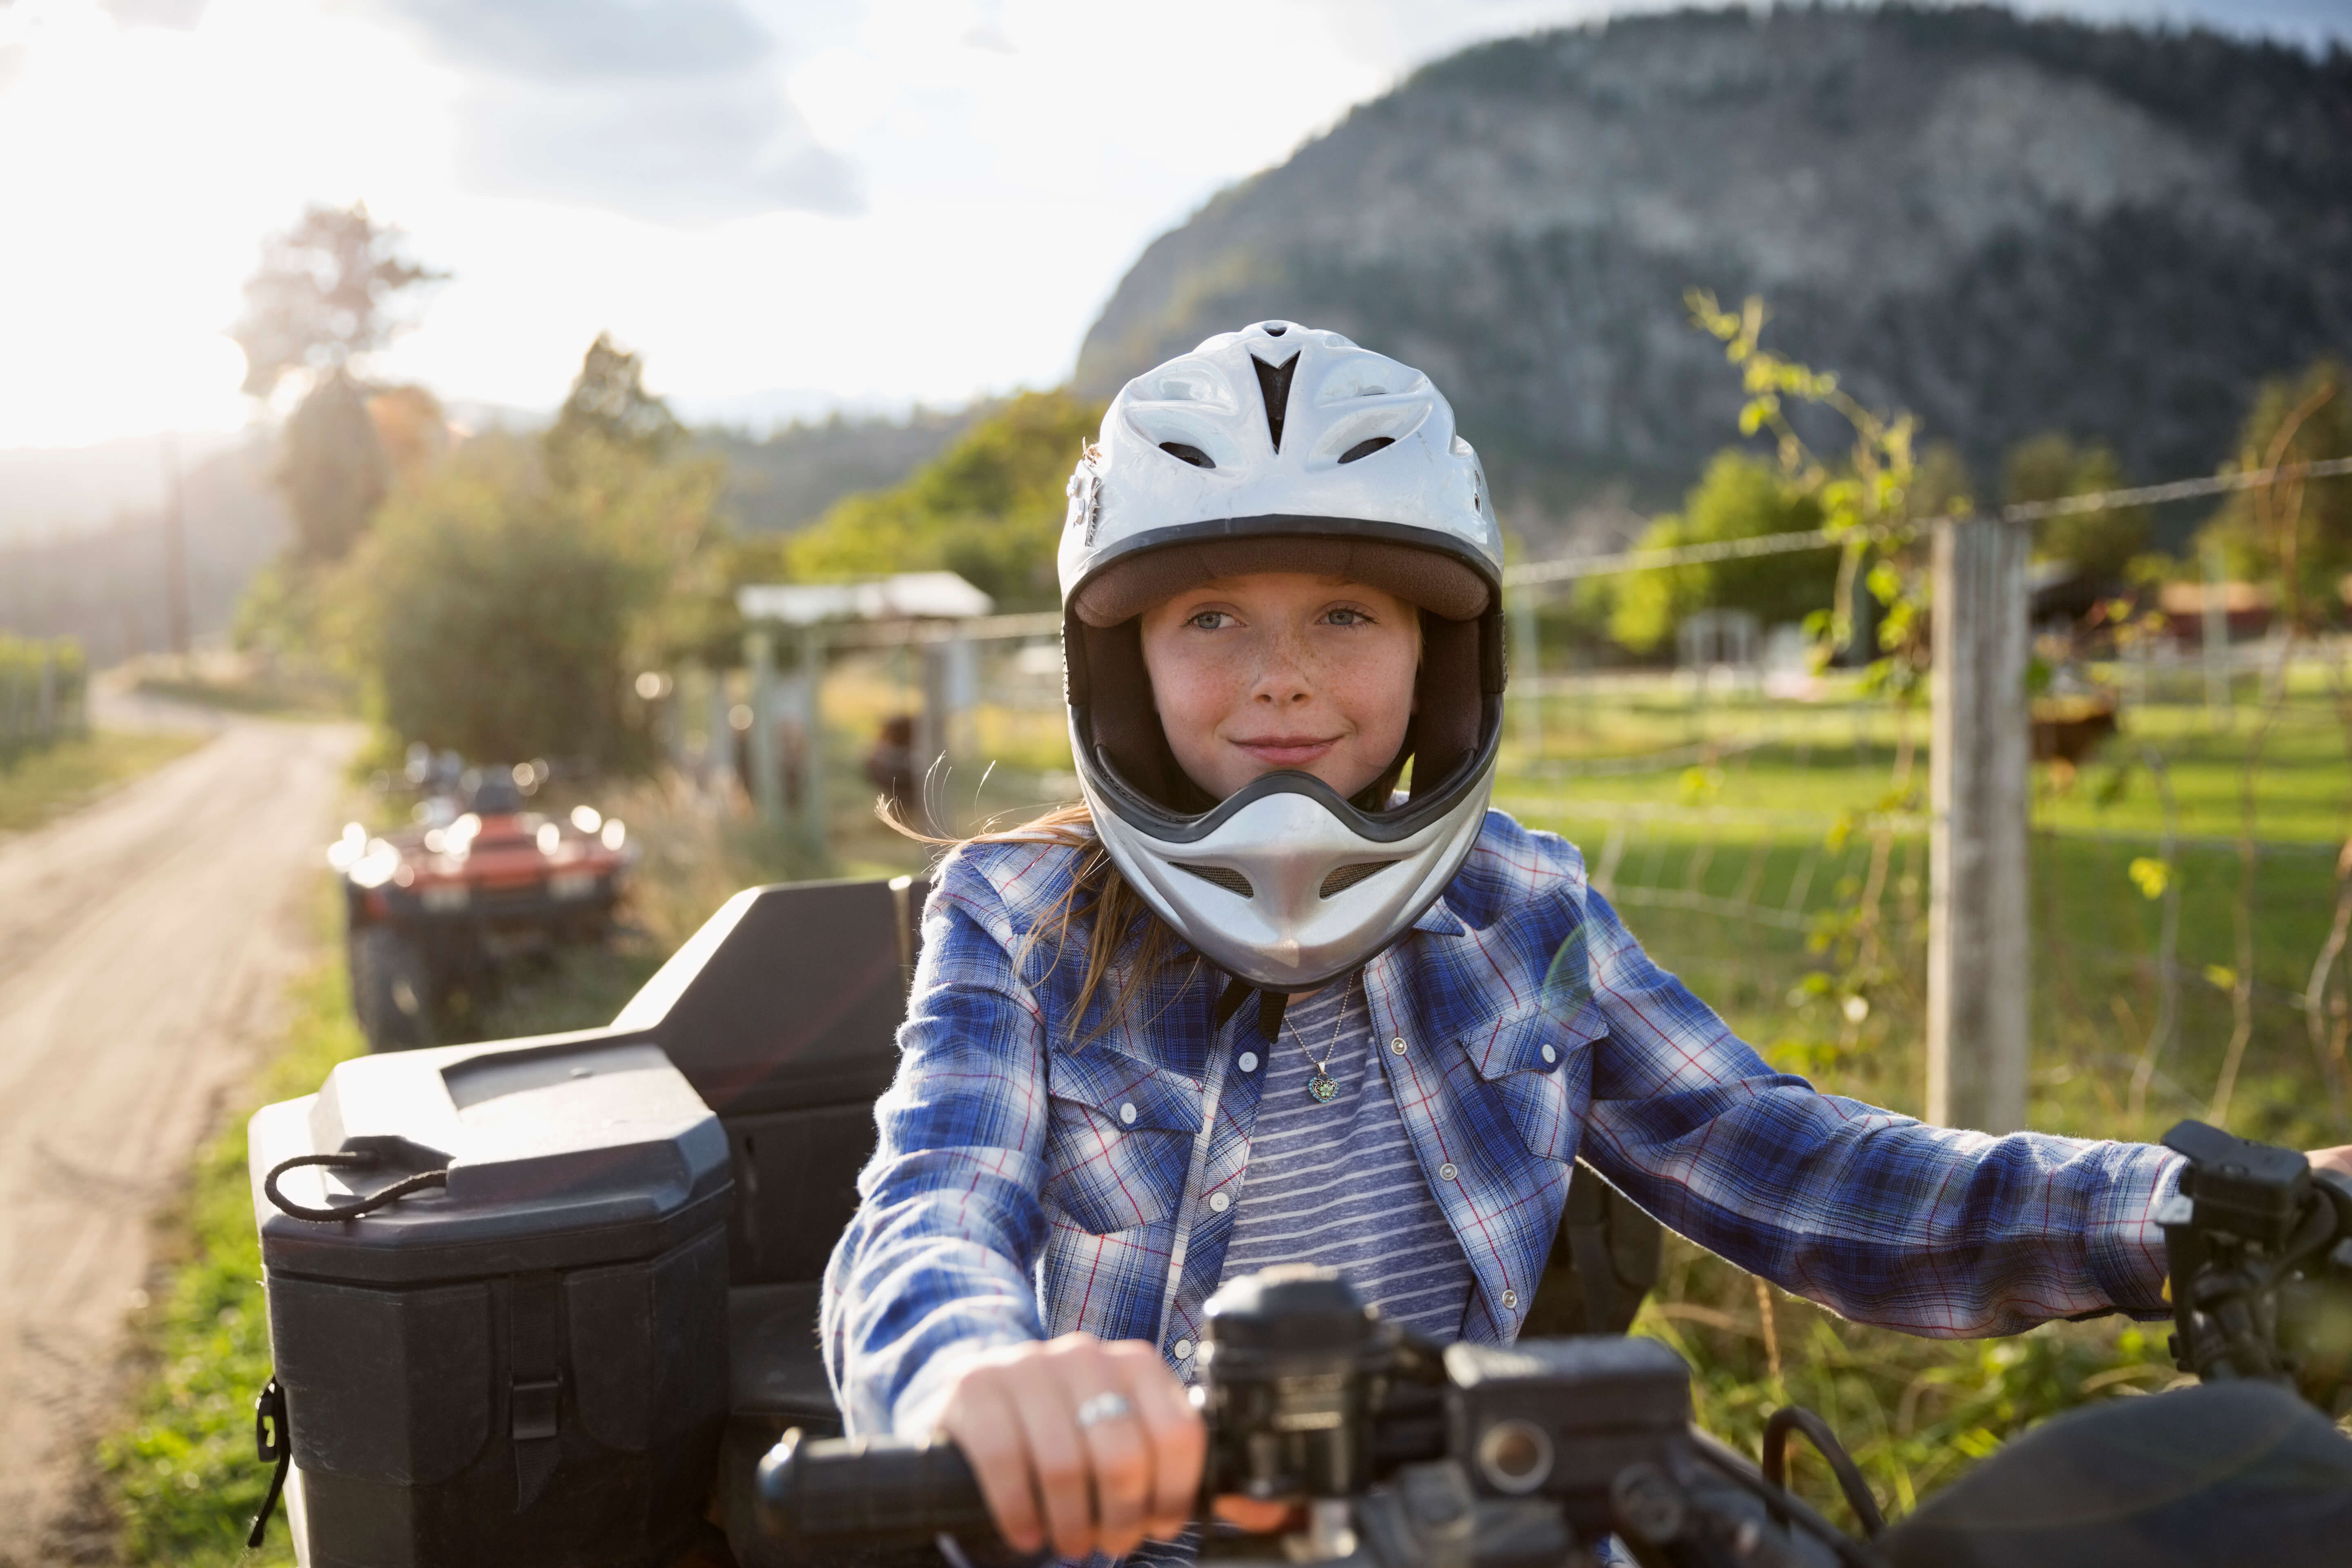 Smiling girl wearing helmet driving ATV on rural farm